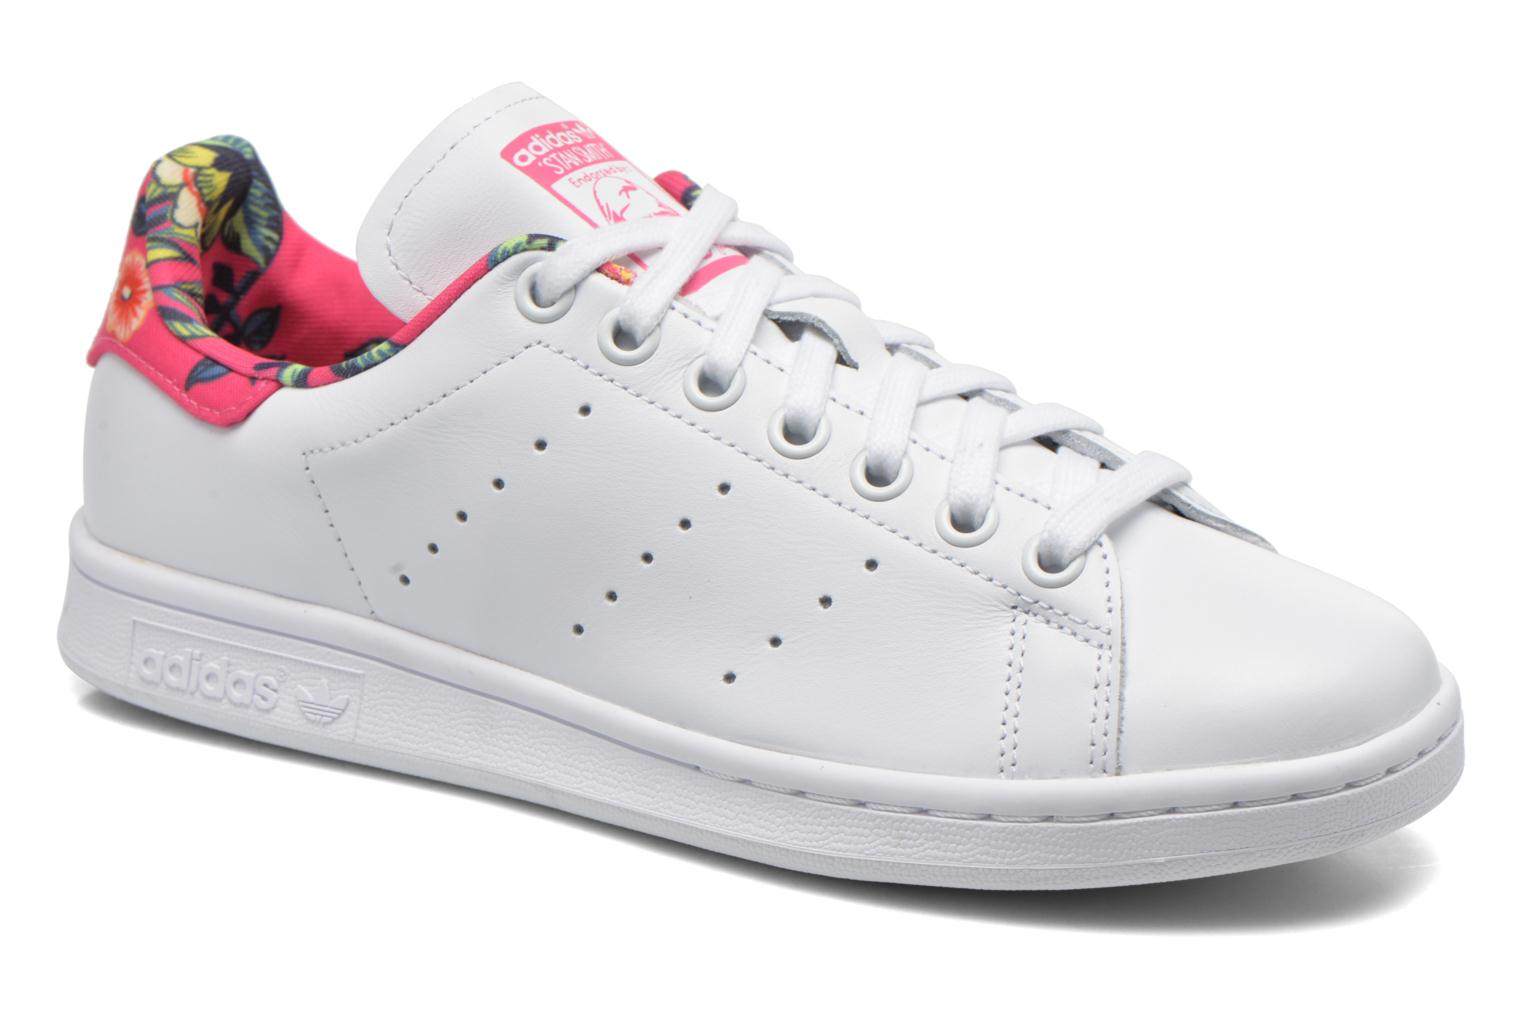 Stan Smith W Ftwbla/Ftwbla/Roslue